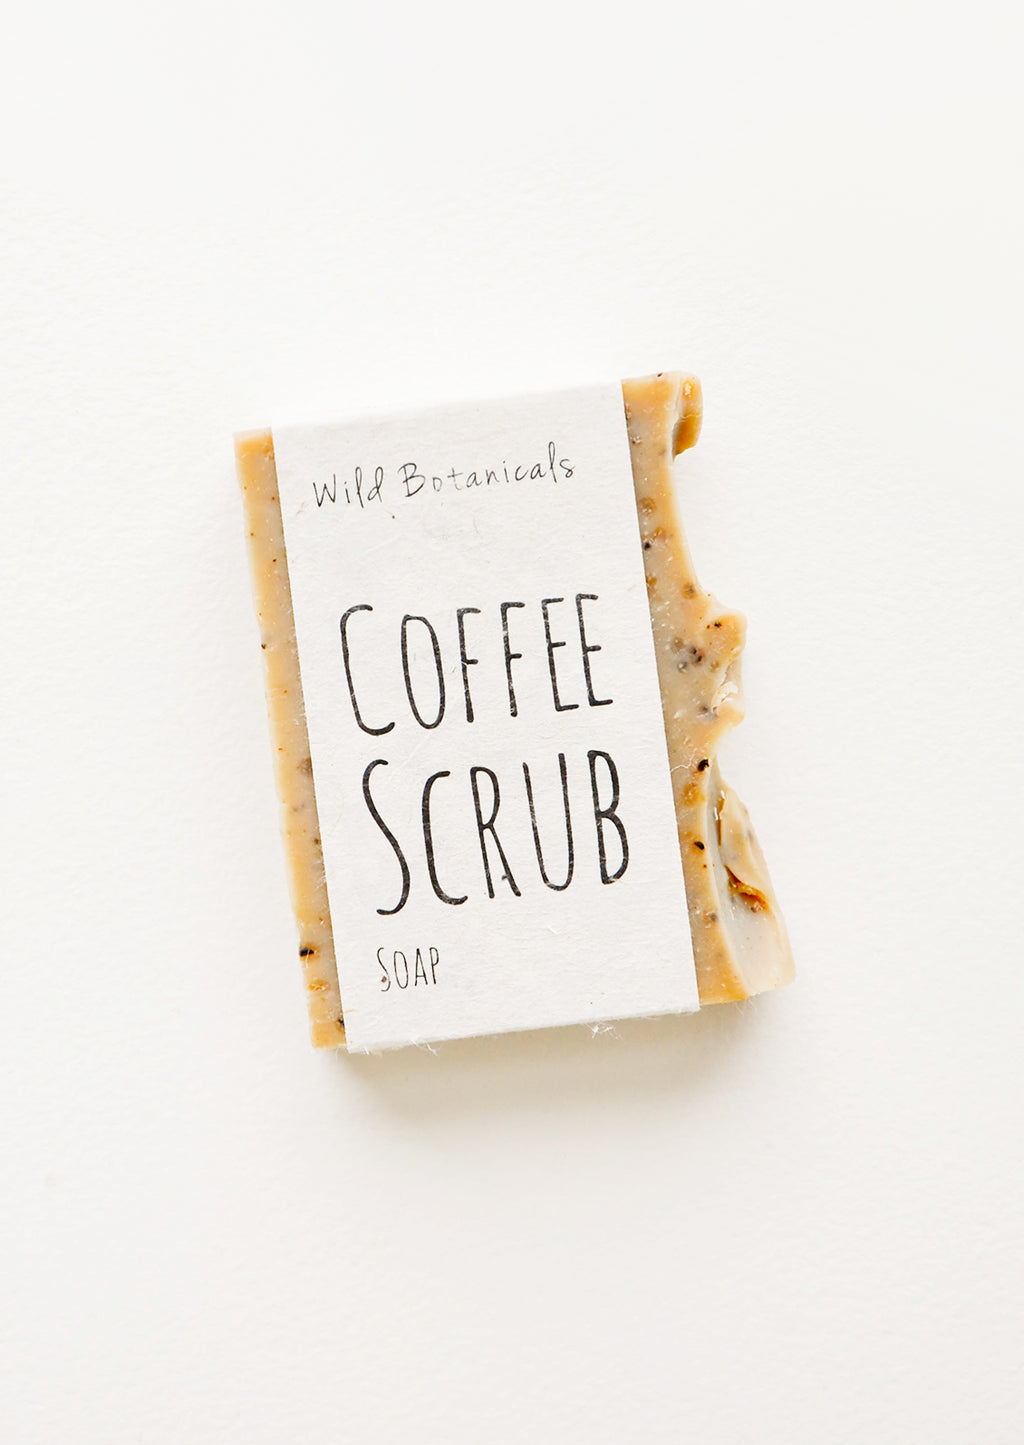 Coffee Scrub: A brown bar soap with one rough edge wrapped in an unbleached paper label.